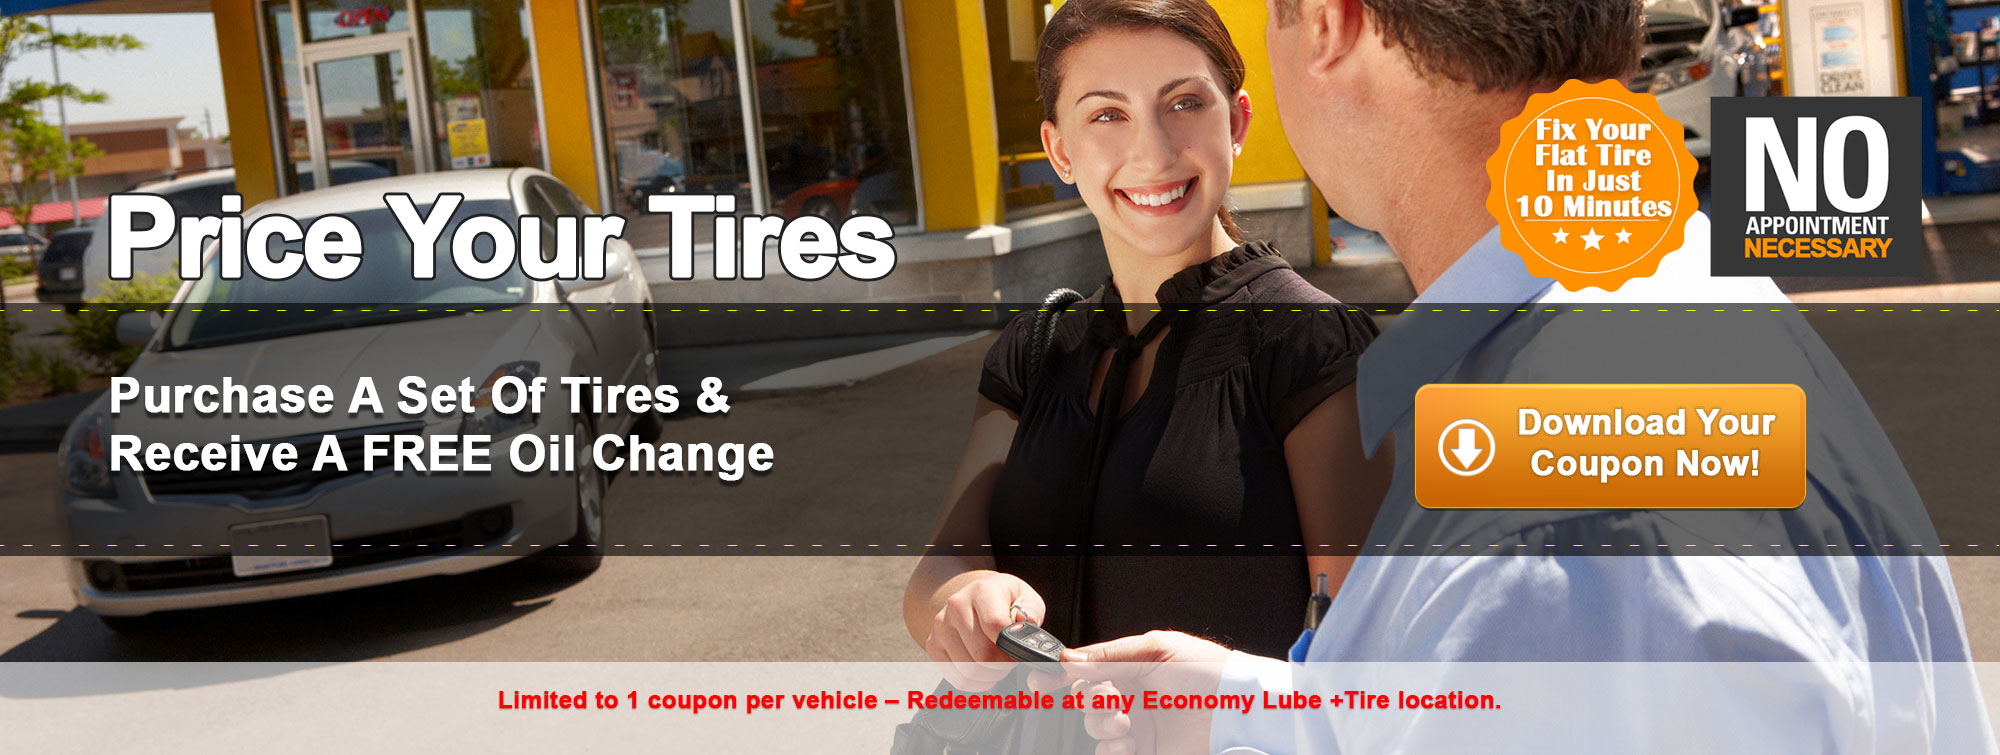 Economy Lube Full Tire Installation and Repair